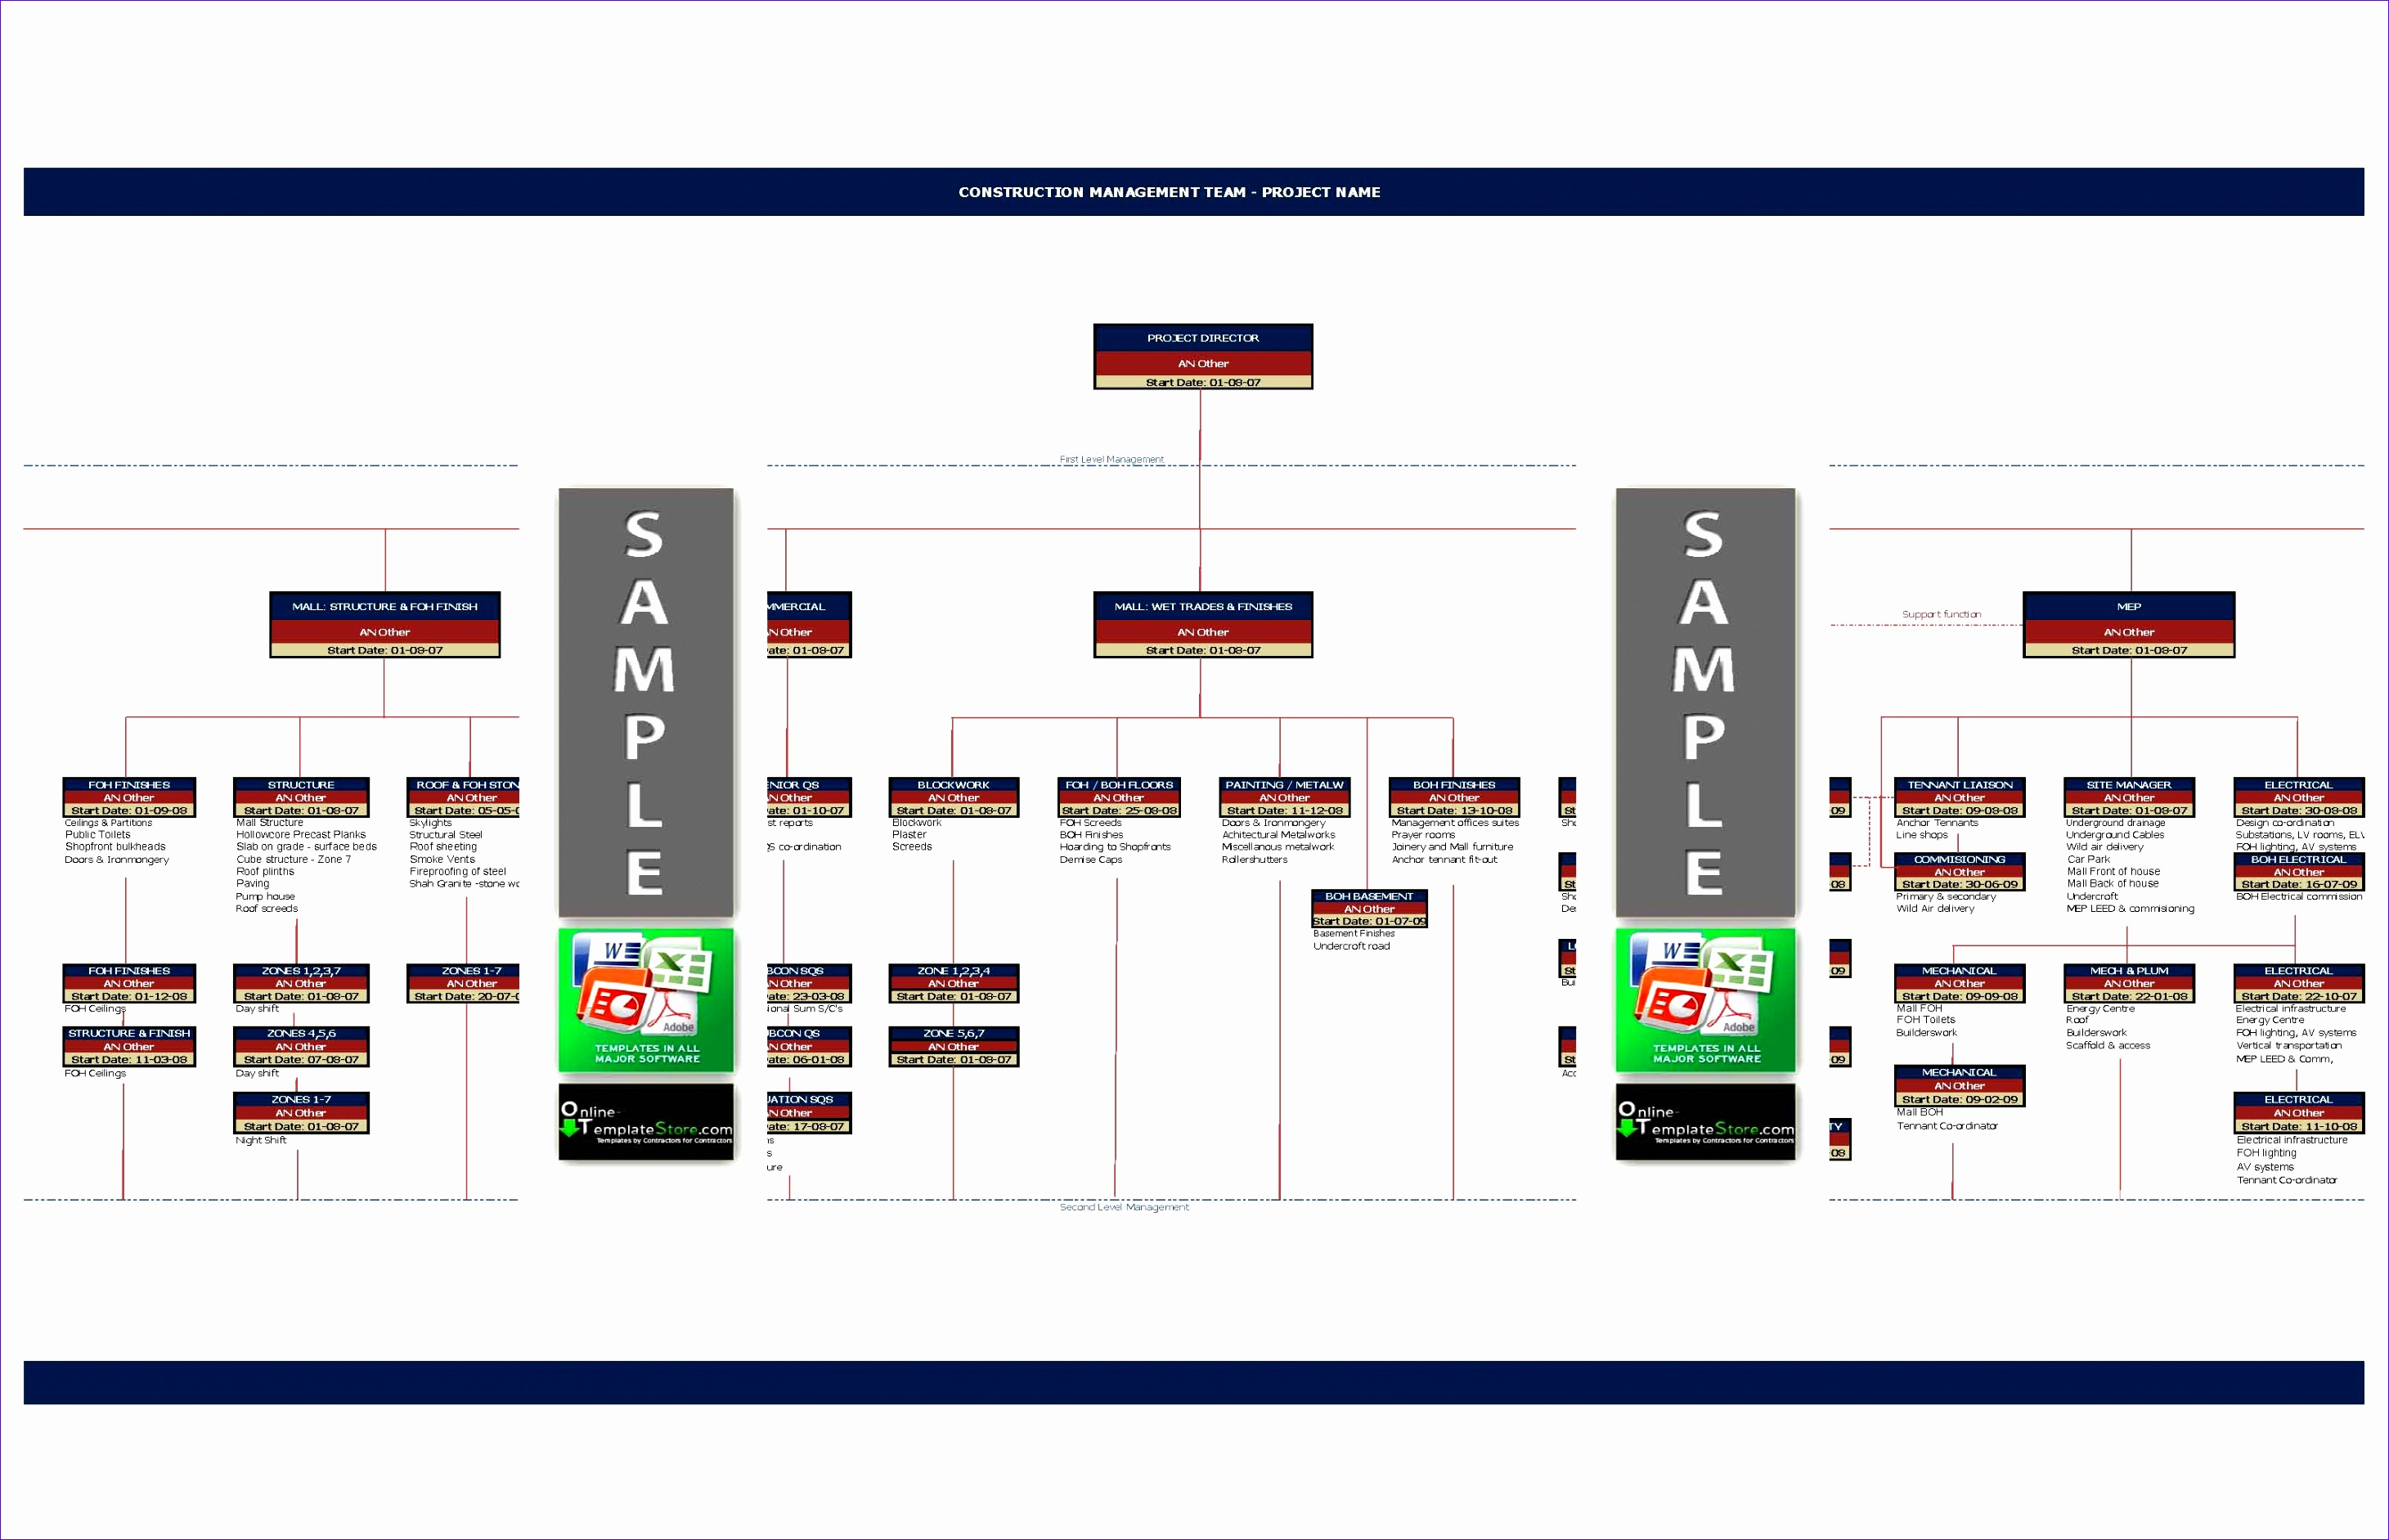 Excel solver Template B1hco Lovely Create You Site or Project organogram with This Simple Excel